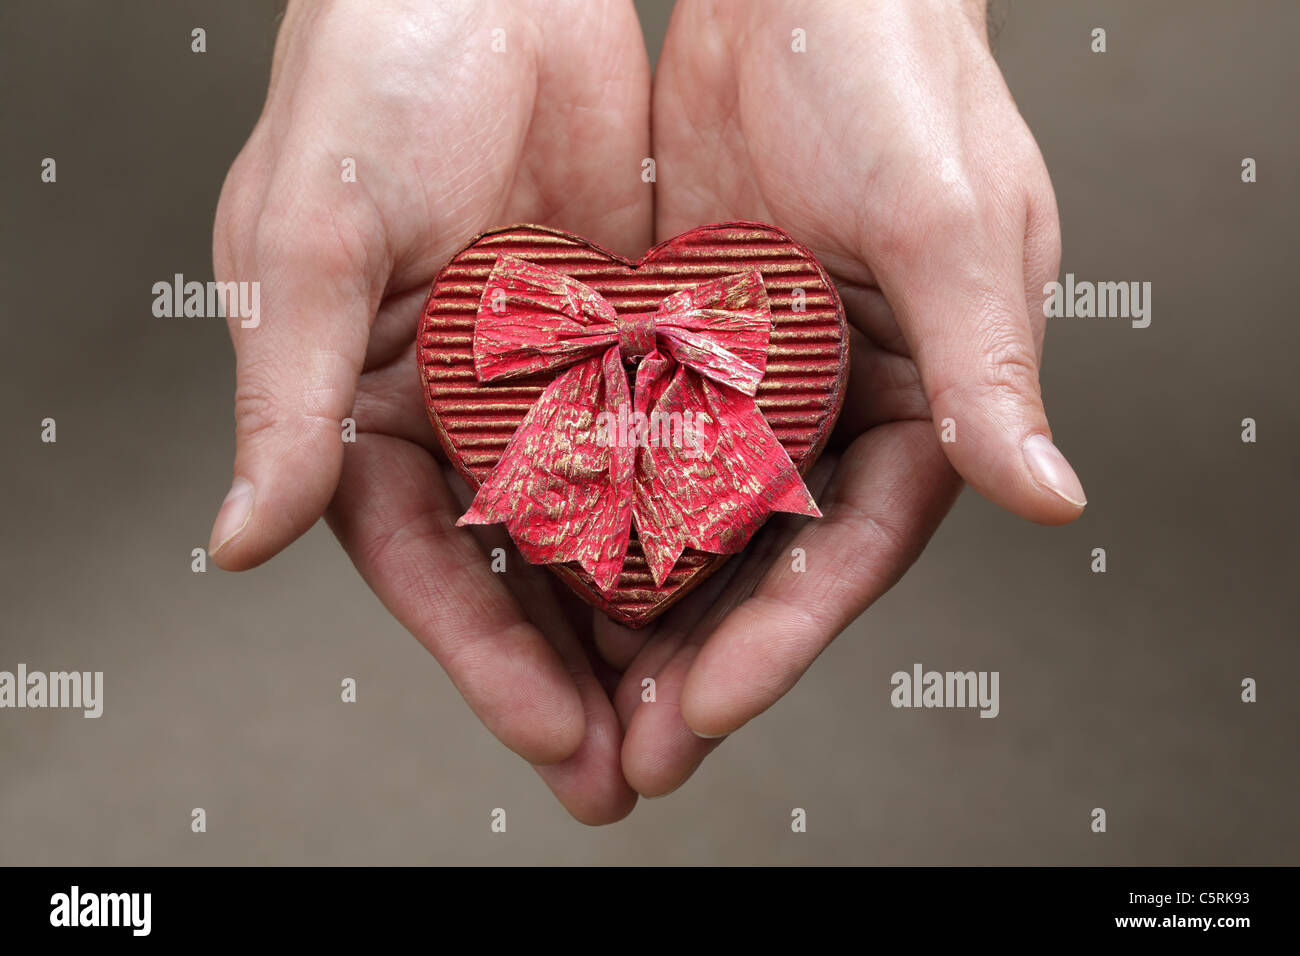 Holding a heart shaped box - Stock Image